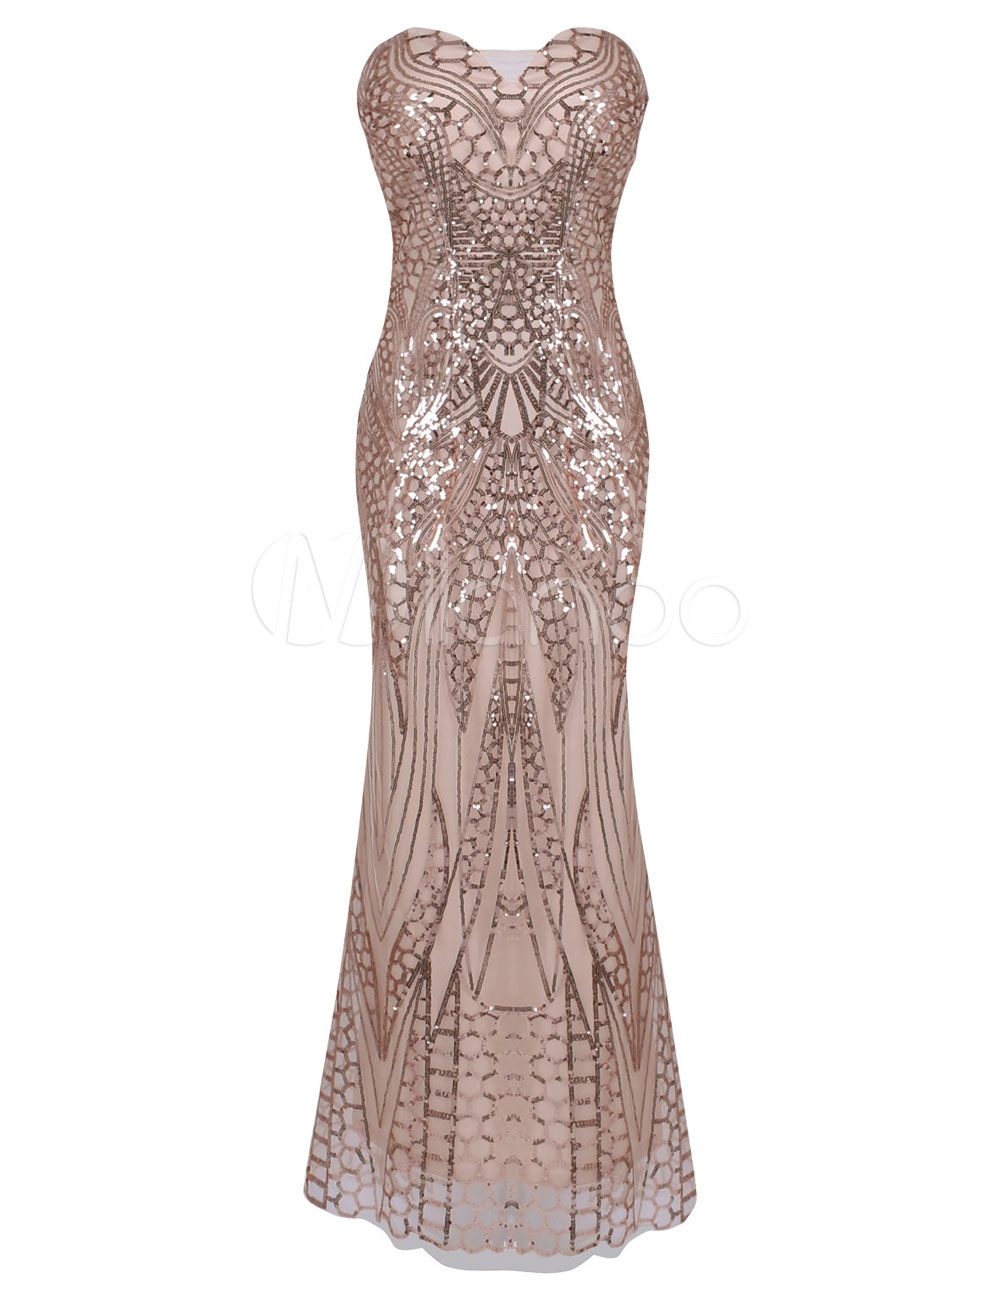 Great Gatsby Flapper Dress 1920s Vintage Costume Women's Champagne Sequined Meimaid Dress Halloween